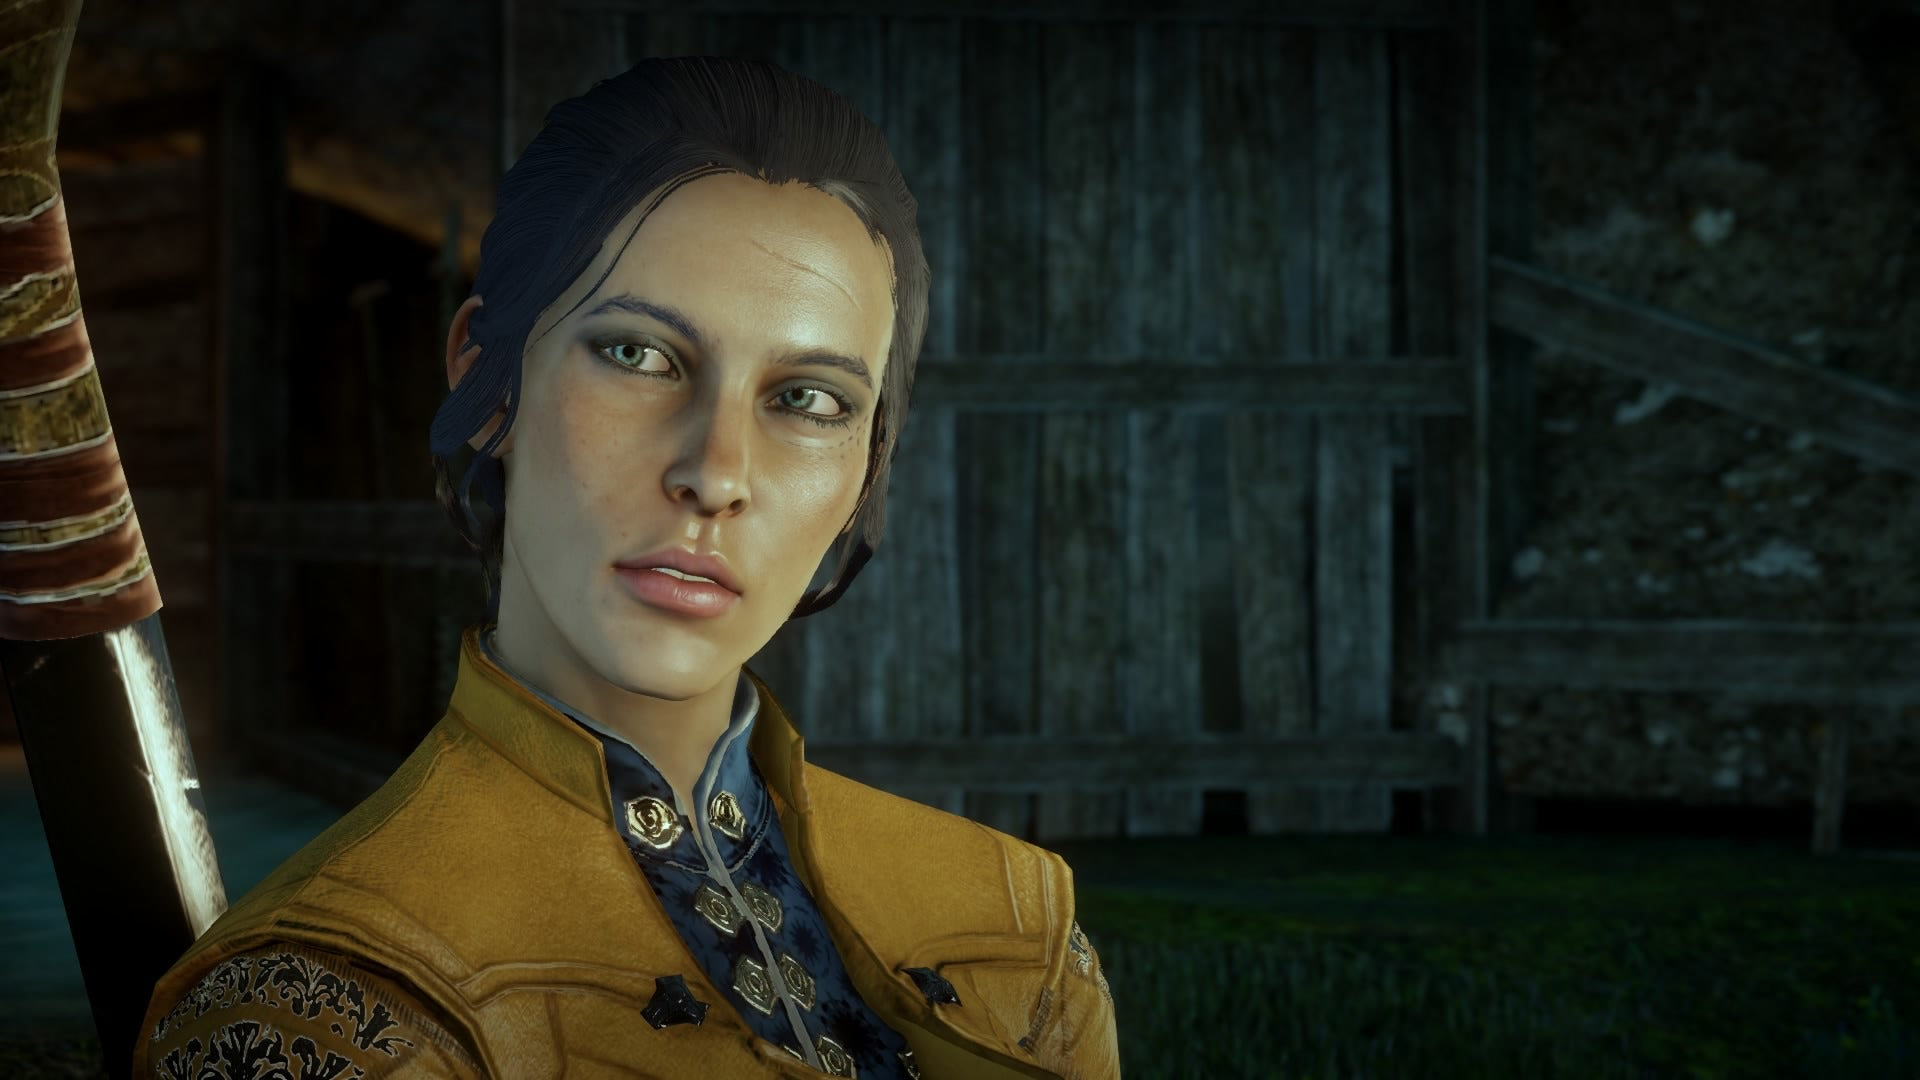 Dragon Age Players, Show Us Your Heroes